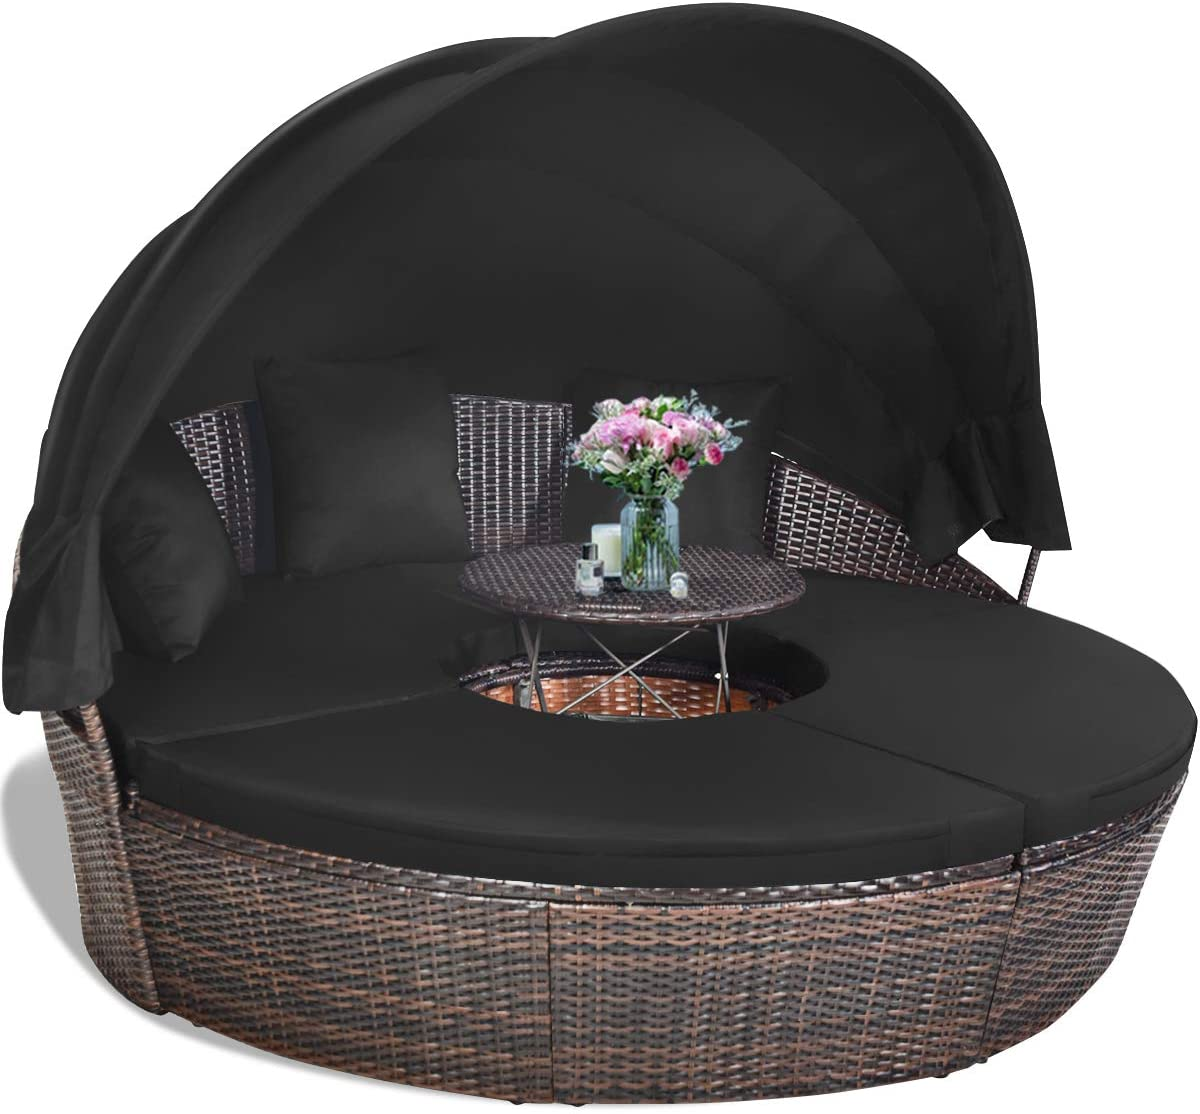 Tangkula Patio Round Daybed with Retractable Canopy, Outdoor Wicker Rattan Furniture Sets, Sectional Sofa Set w/Height Adjustable Coffee Table, Rattan Conversation Sets (Black)